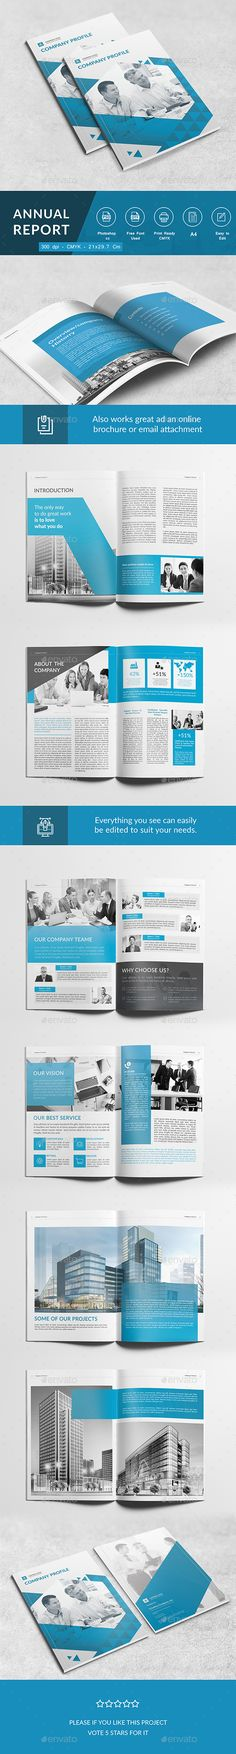 Corporate Brochure Template InDesign INDD Brochure Templates - professional business profile template